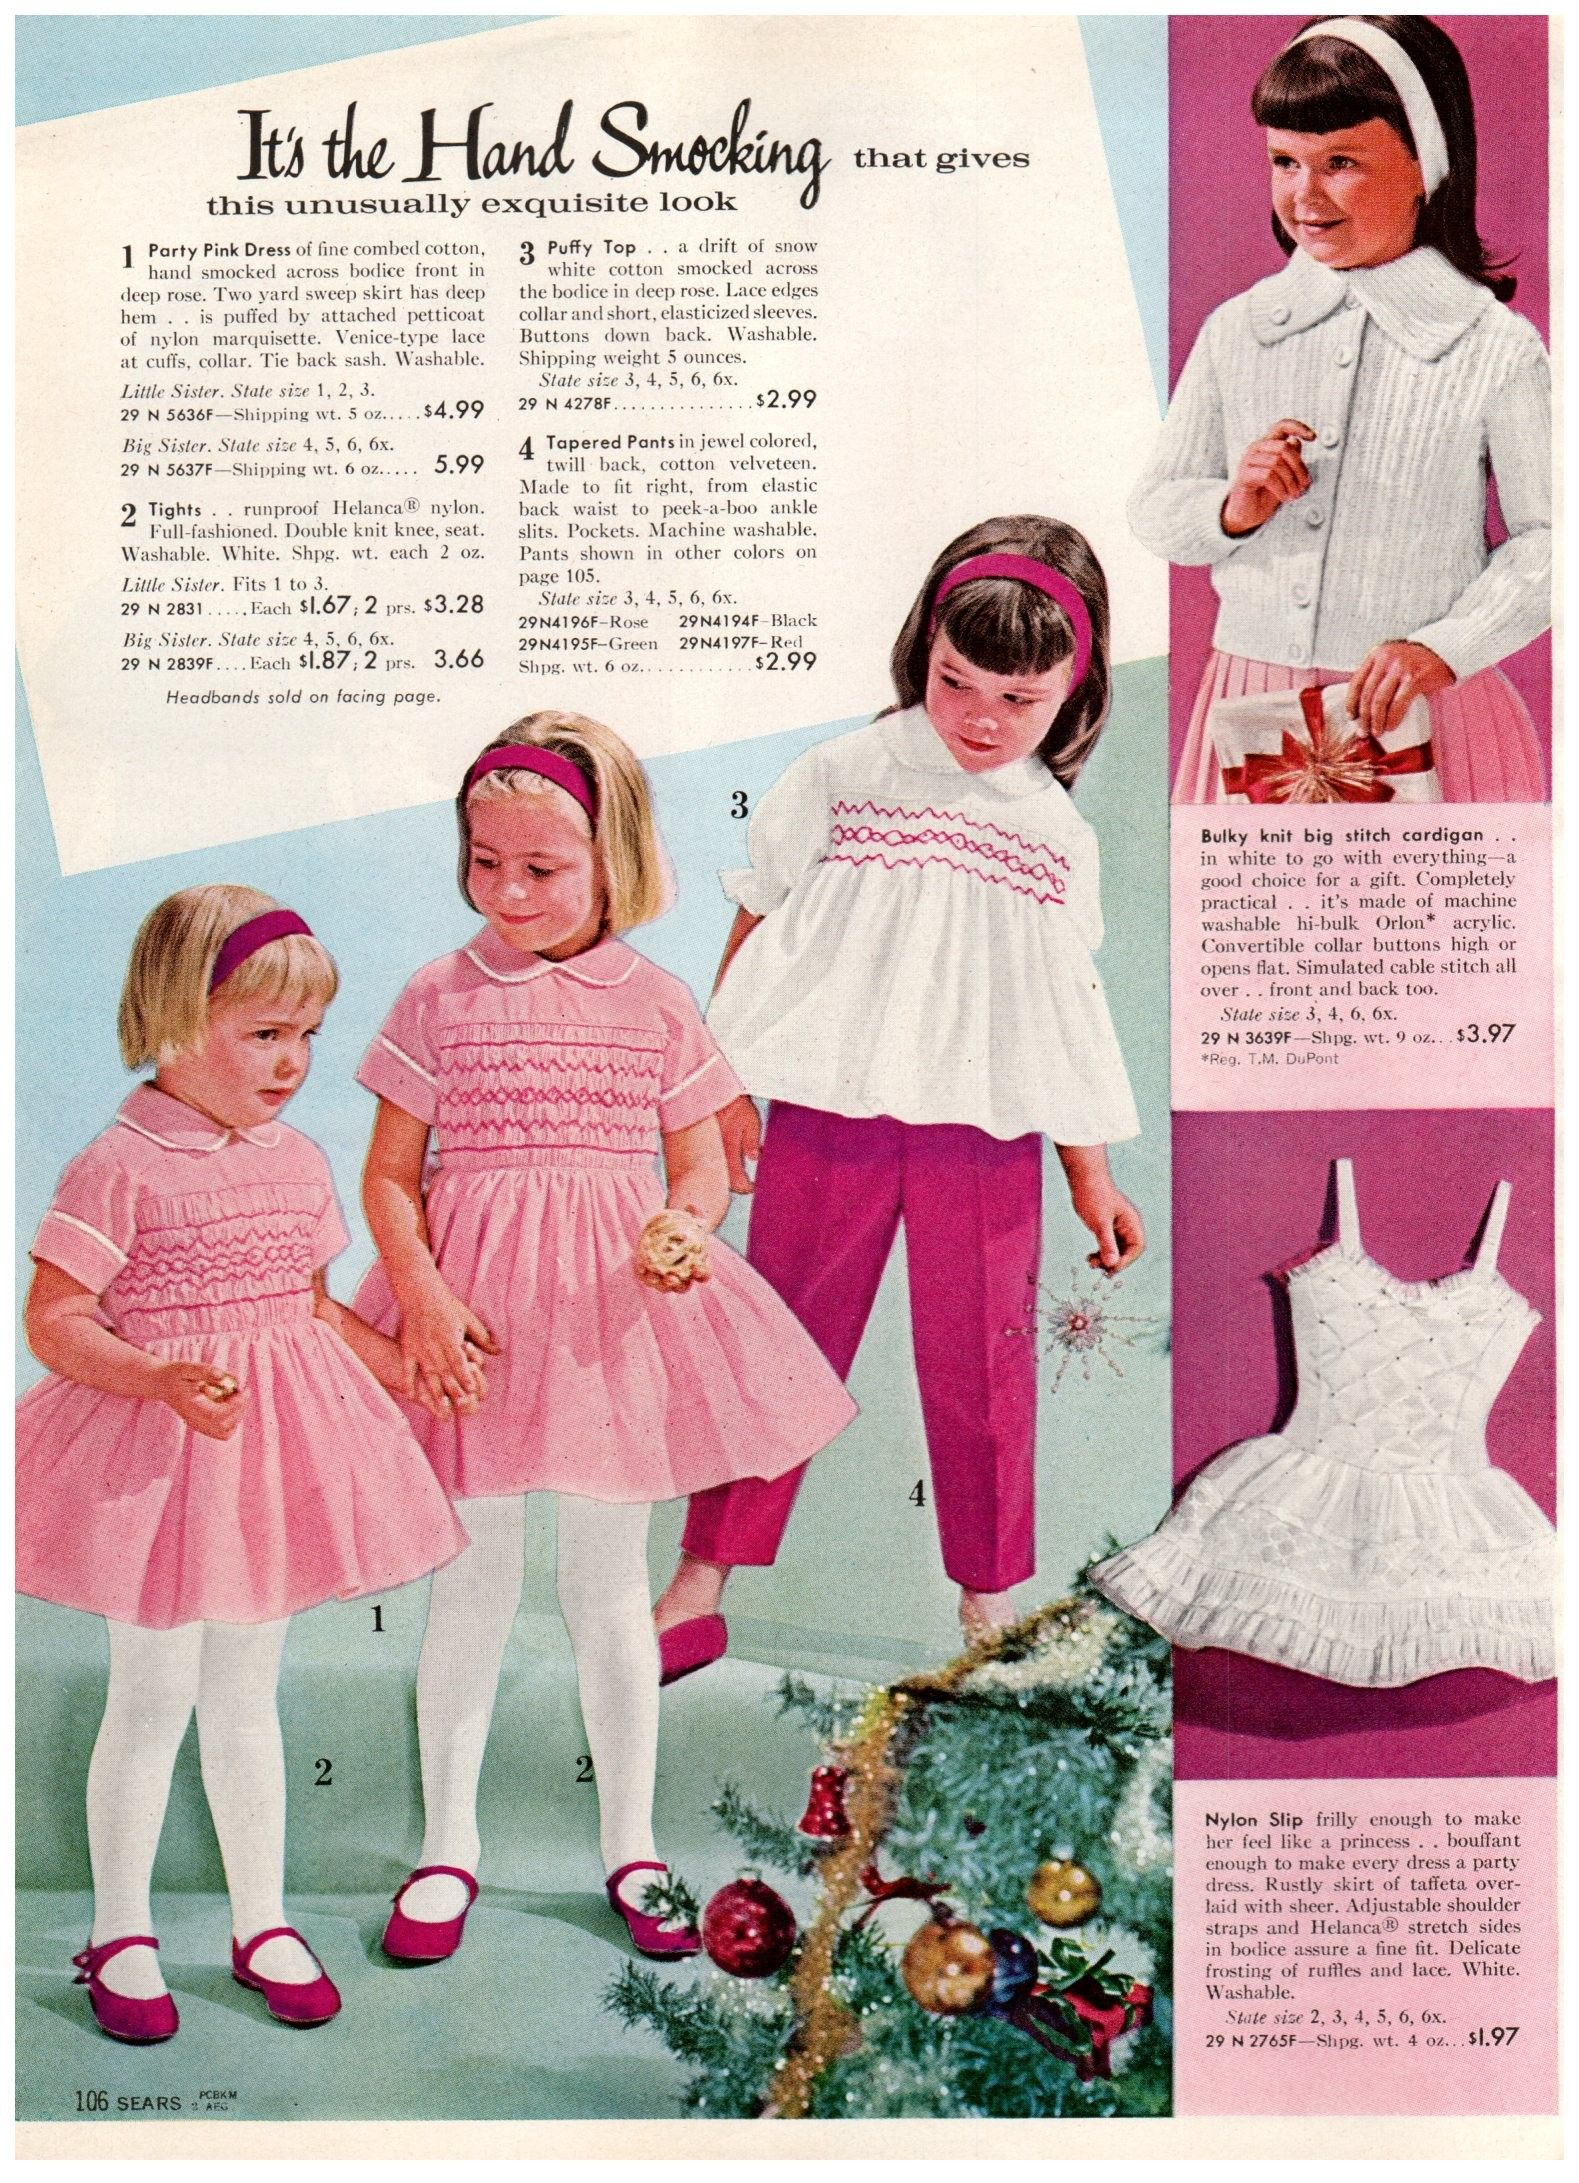 All sizes | 1962 Sears Wishbook Christmas Book | Flickr - Photo